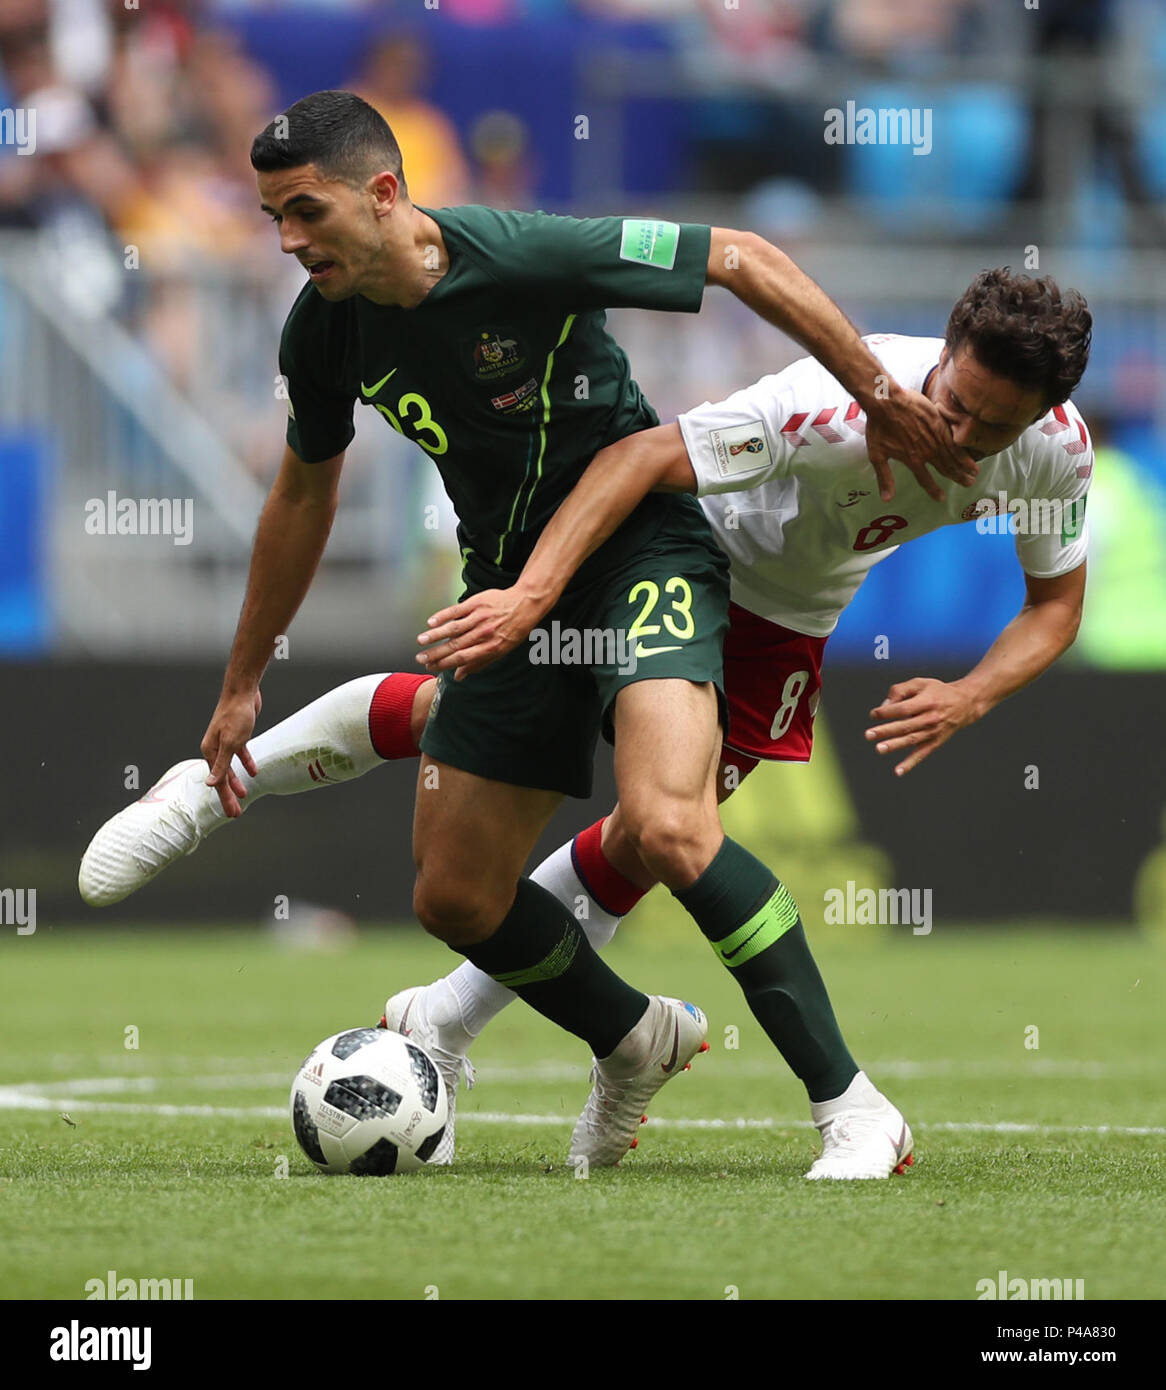 Samara, Russia. 21st June, 2018. Thomas Delaney (R) of Denmark vies with Tom Rogic of Australia during the 2018 FIFA World Cup Group C match between Denmark and Australia in Samara, Russia, June 21, 2018. Credit: Fei Maohua/Xinhua/Alamy Live News - Stock Image